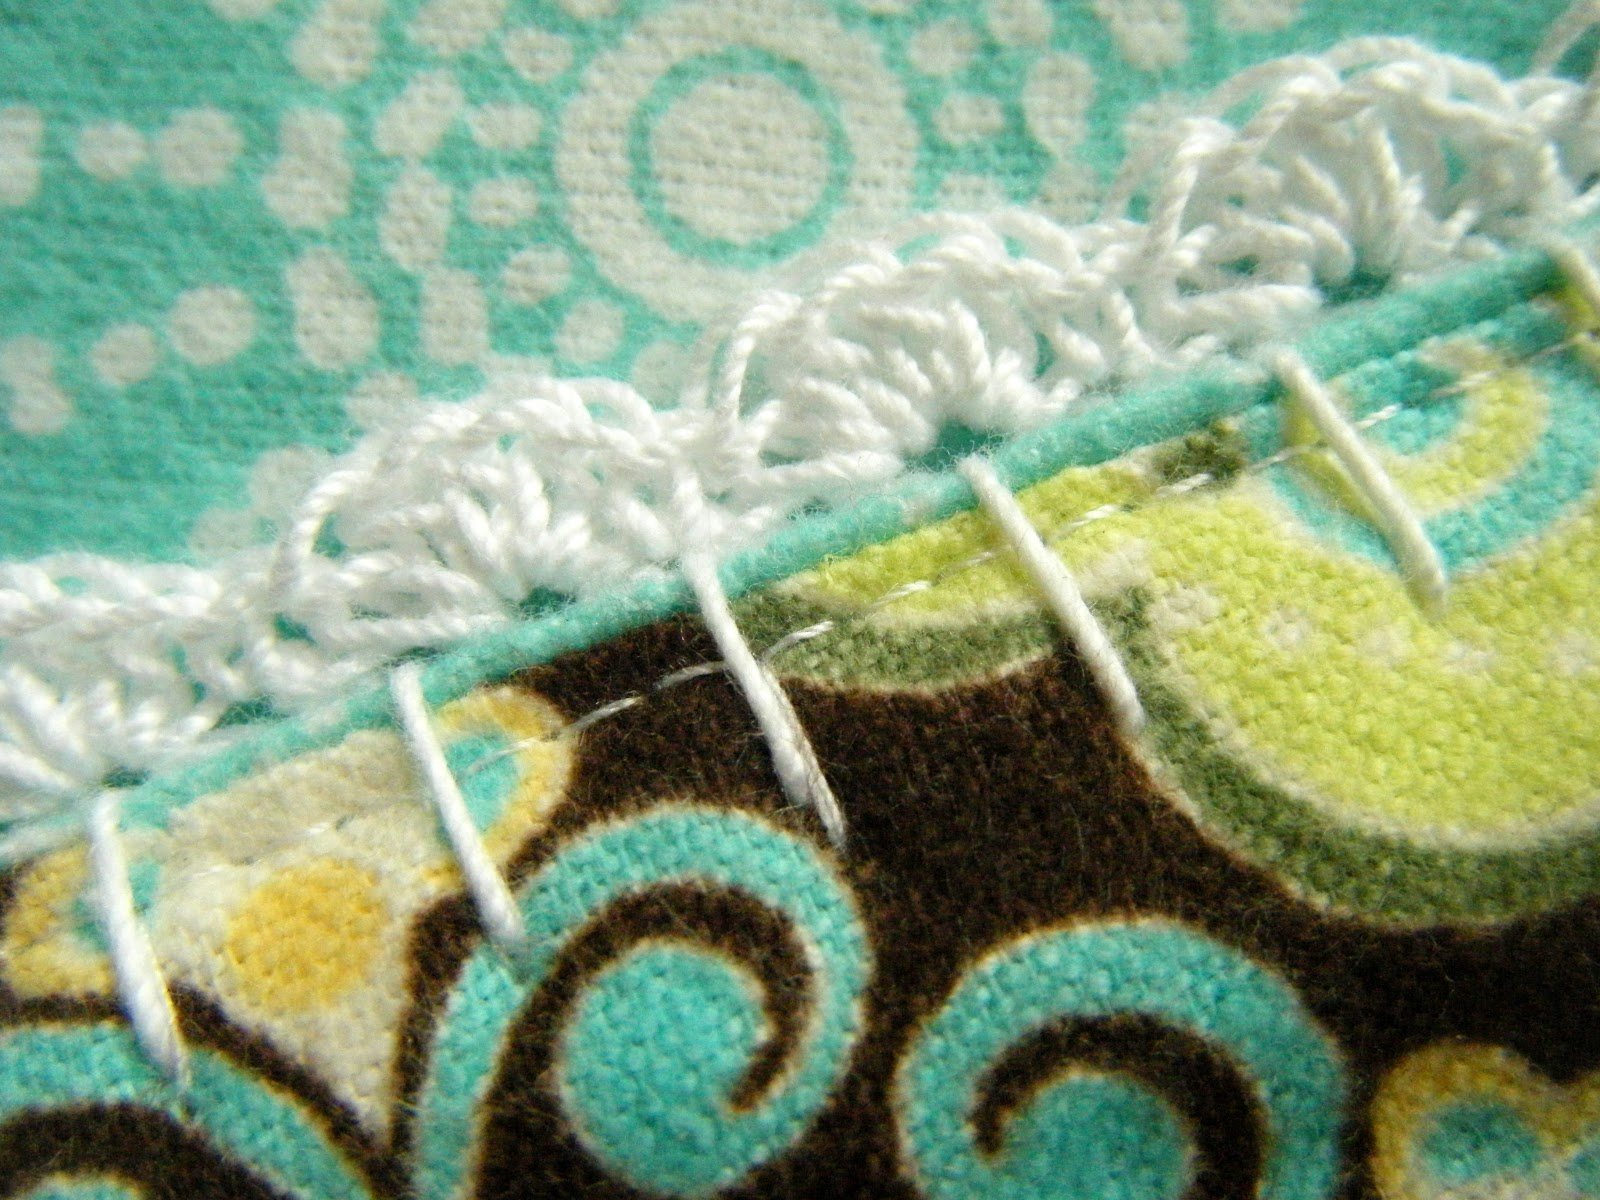 Crochet Baby Blanket Edging Tutorial : no-hemstitch crochet edge receiving blanket {birthday bash ...